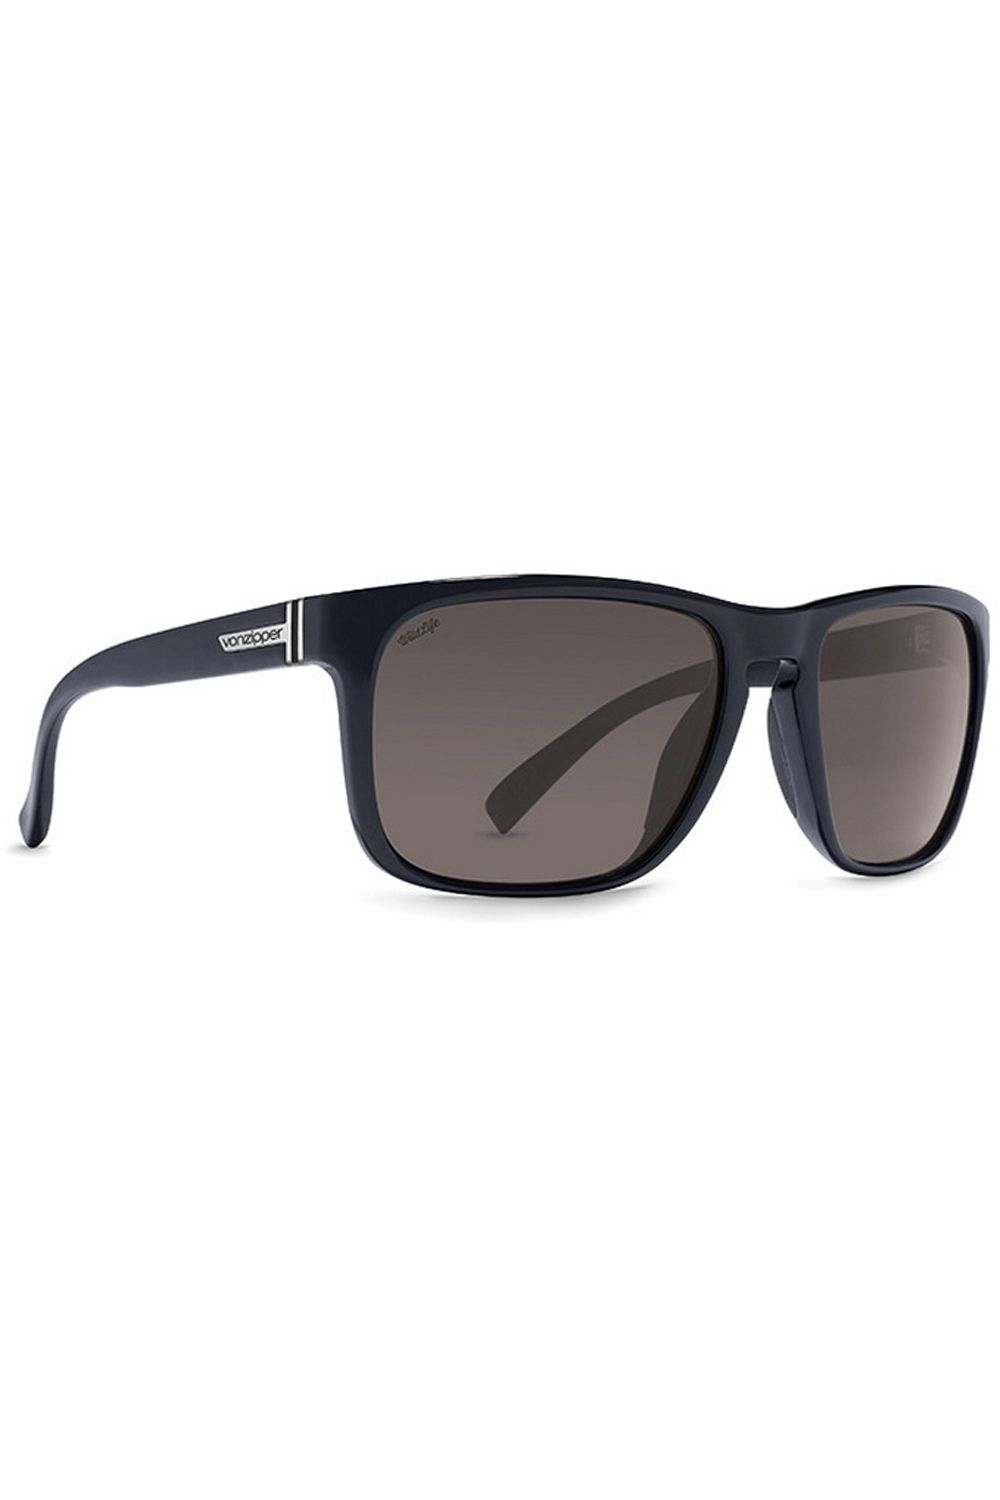 Oculos VonZipper LOMAX WILDLIFE Black Gloss / Wildlife Vintage Grey Polar